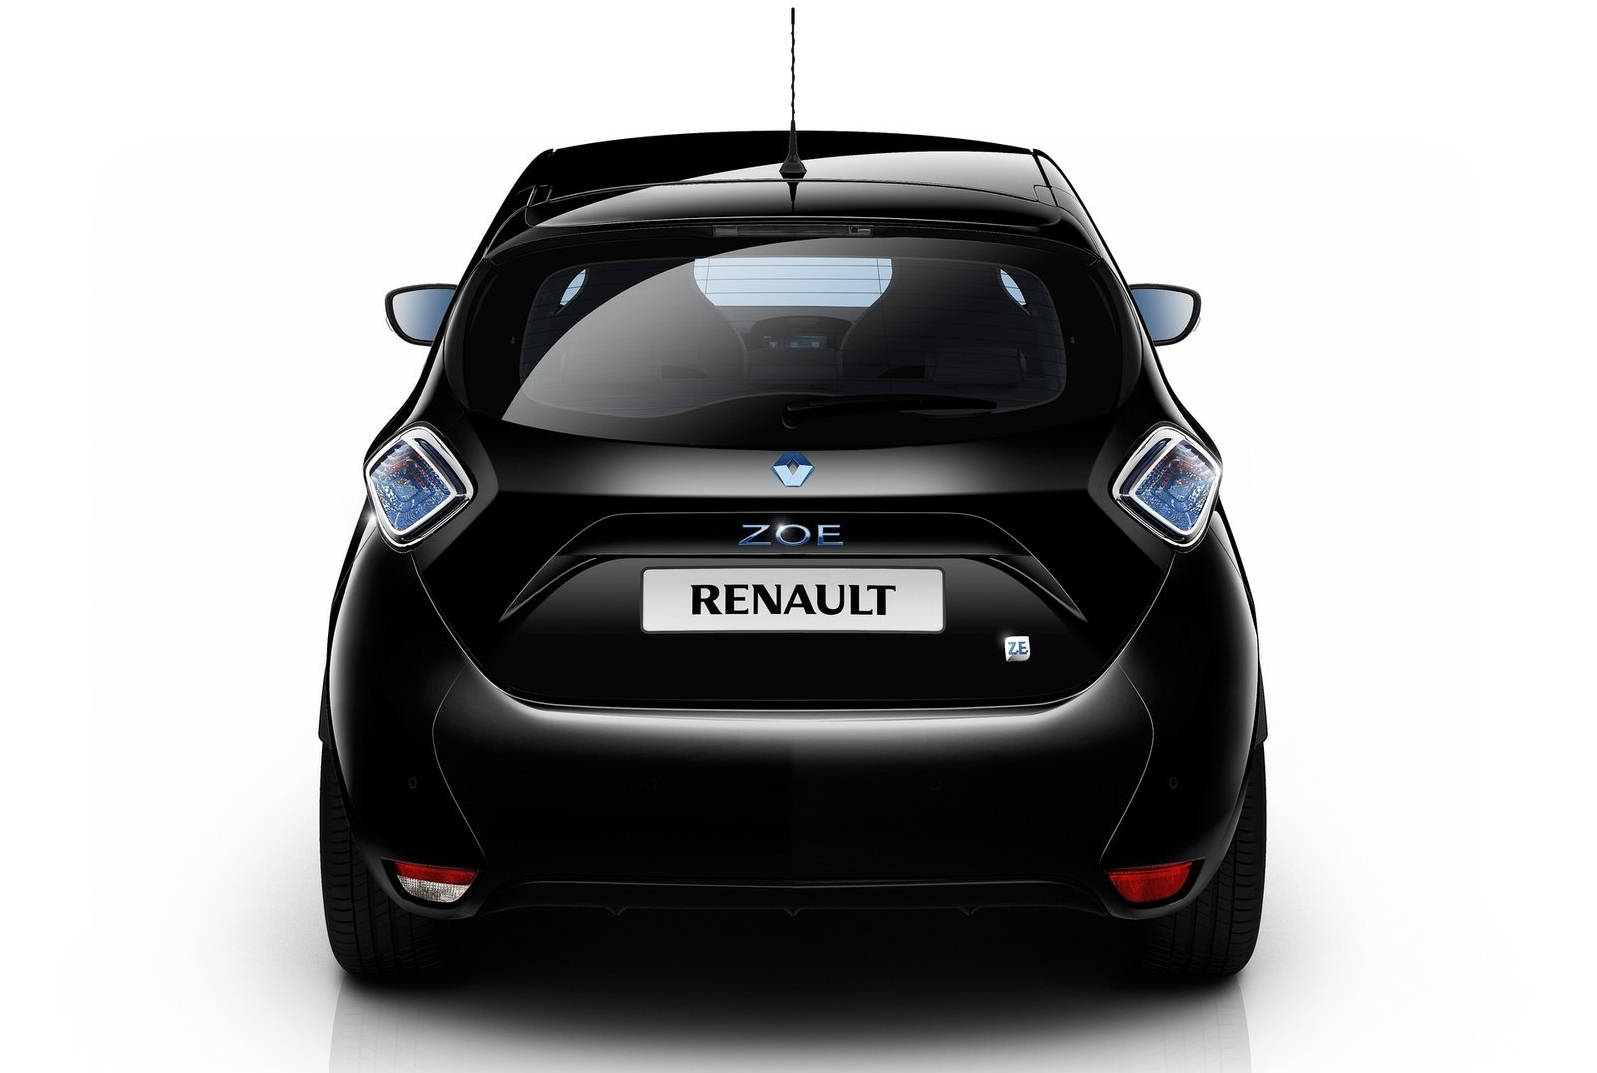 renault zoe 2013 car wallpapers n detail. Black Bedroom Furniture Sets. Home Design Ideas